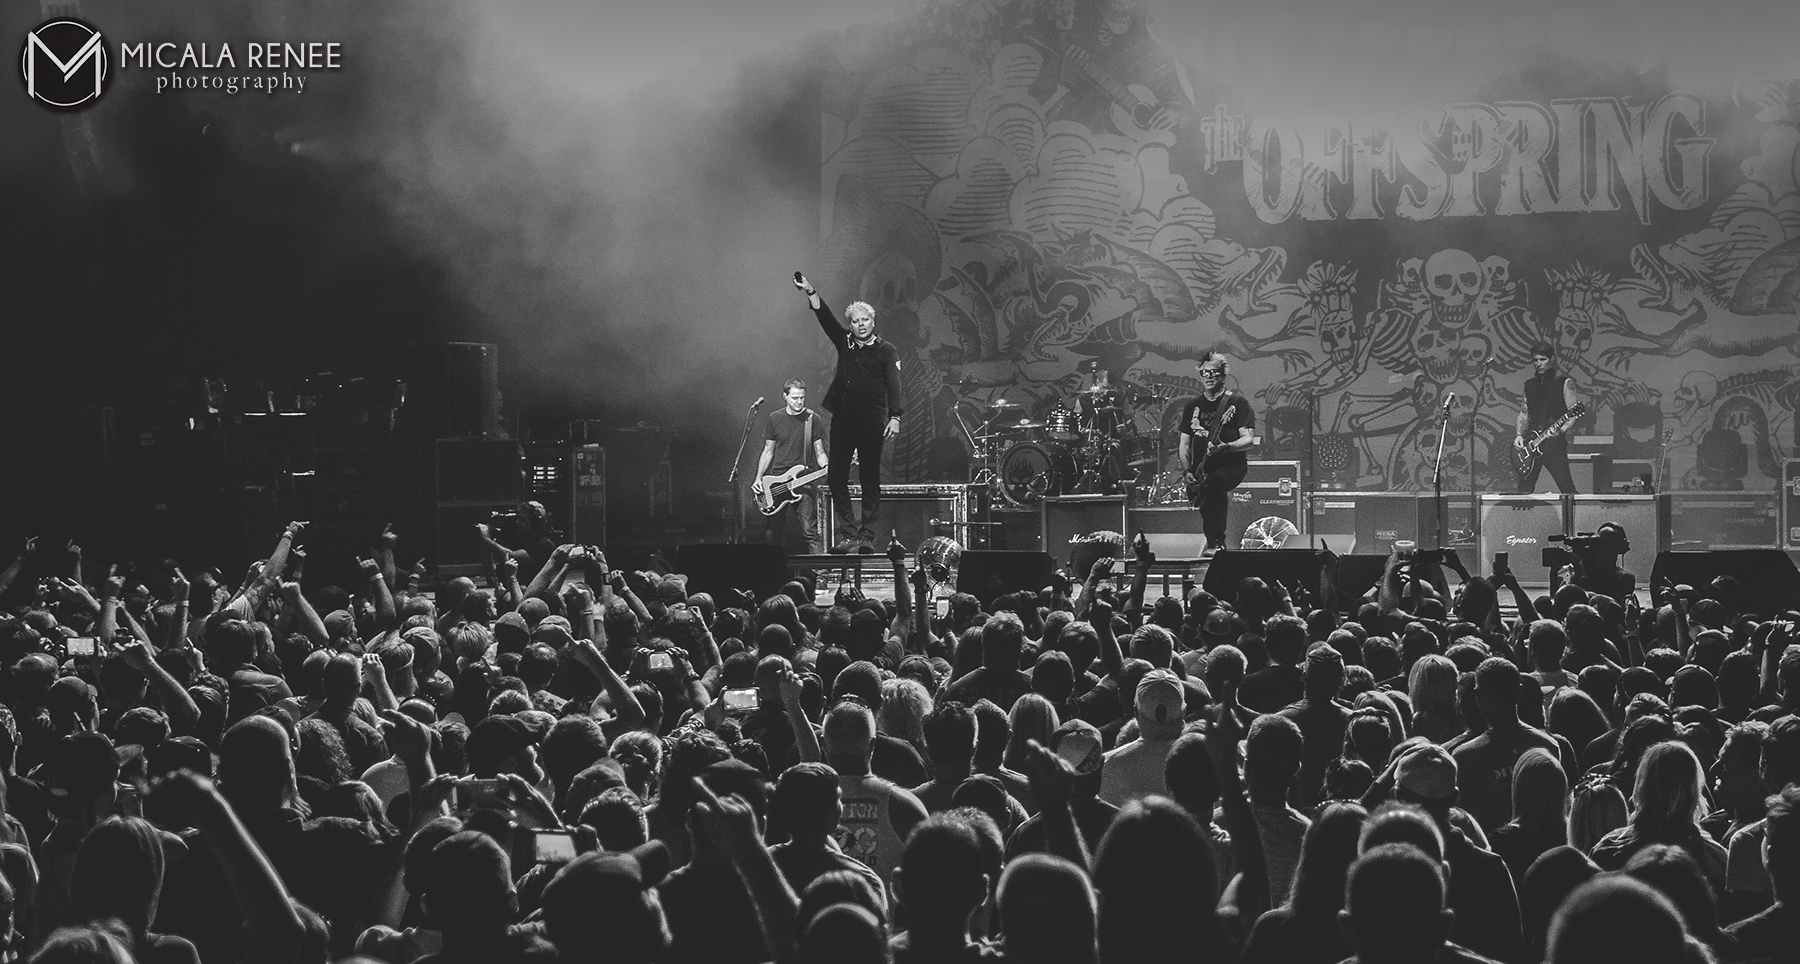 COMING SOON • The Offspring • Verizon Wireless Amphitheater • St. Louis, MO • 09.10.17